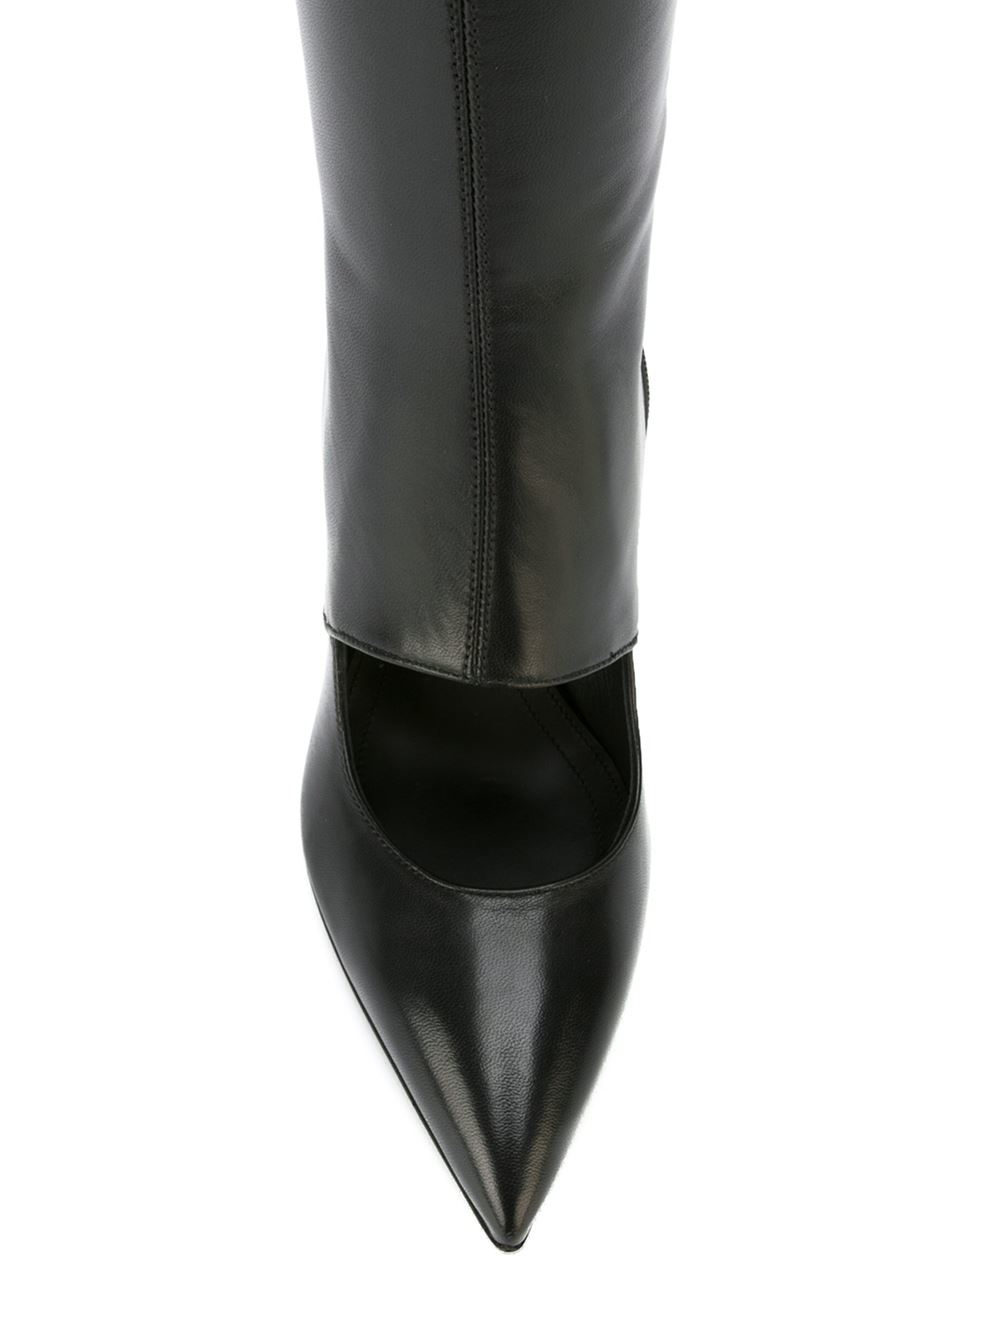 JW Anderson Leather Cut-out Wedge Boots in Black